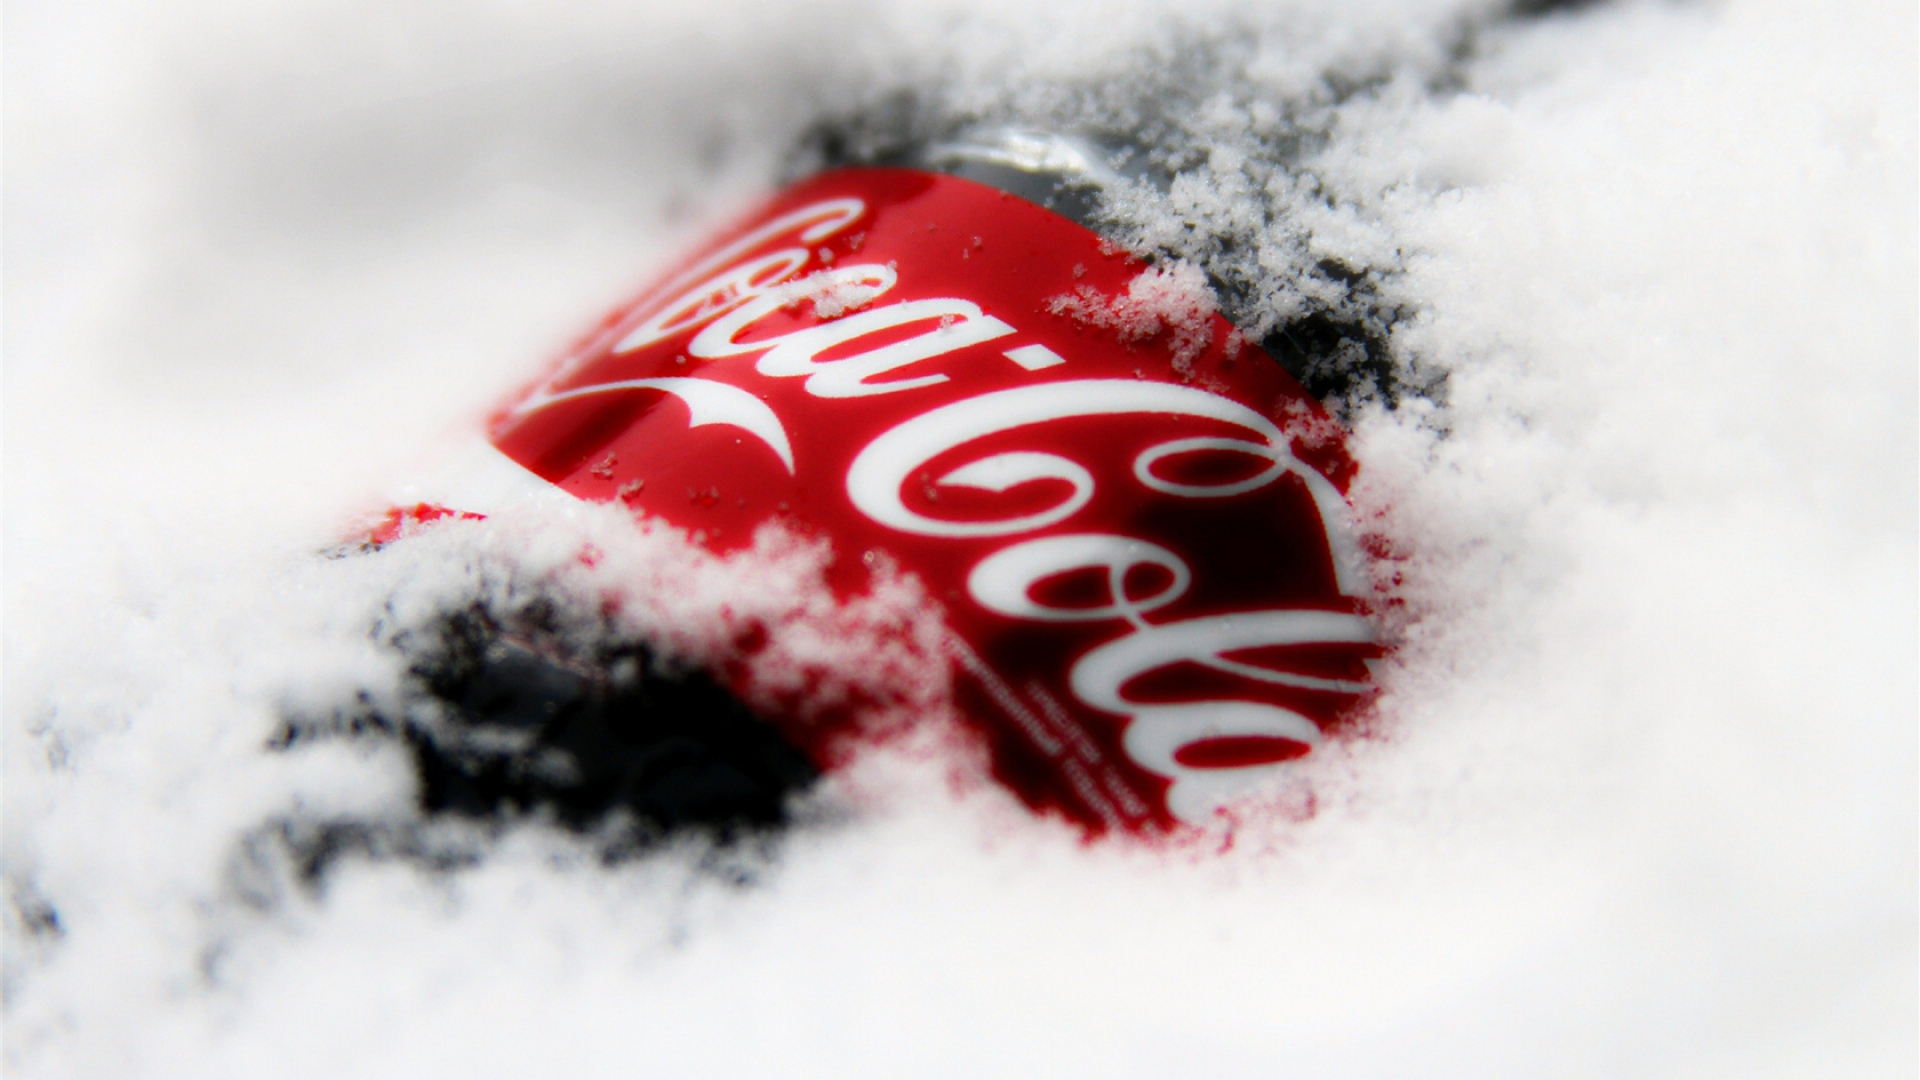 Coca Cola Wallpapers  Wallpaper  1920x1080